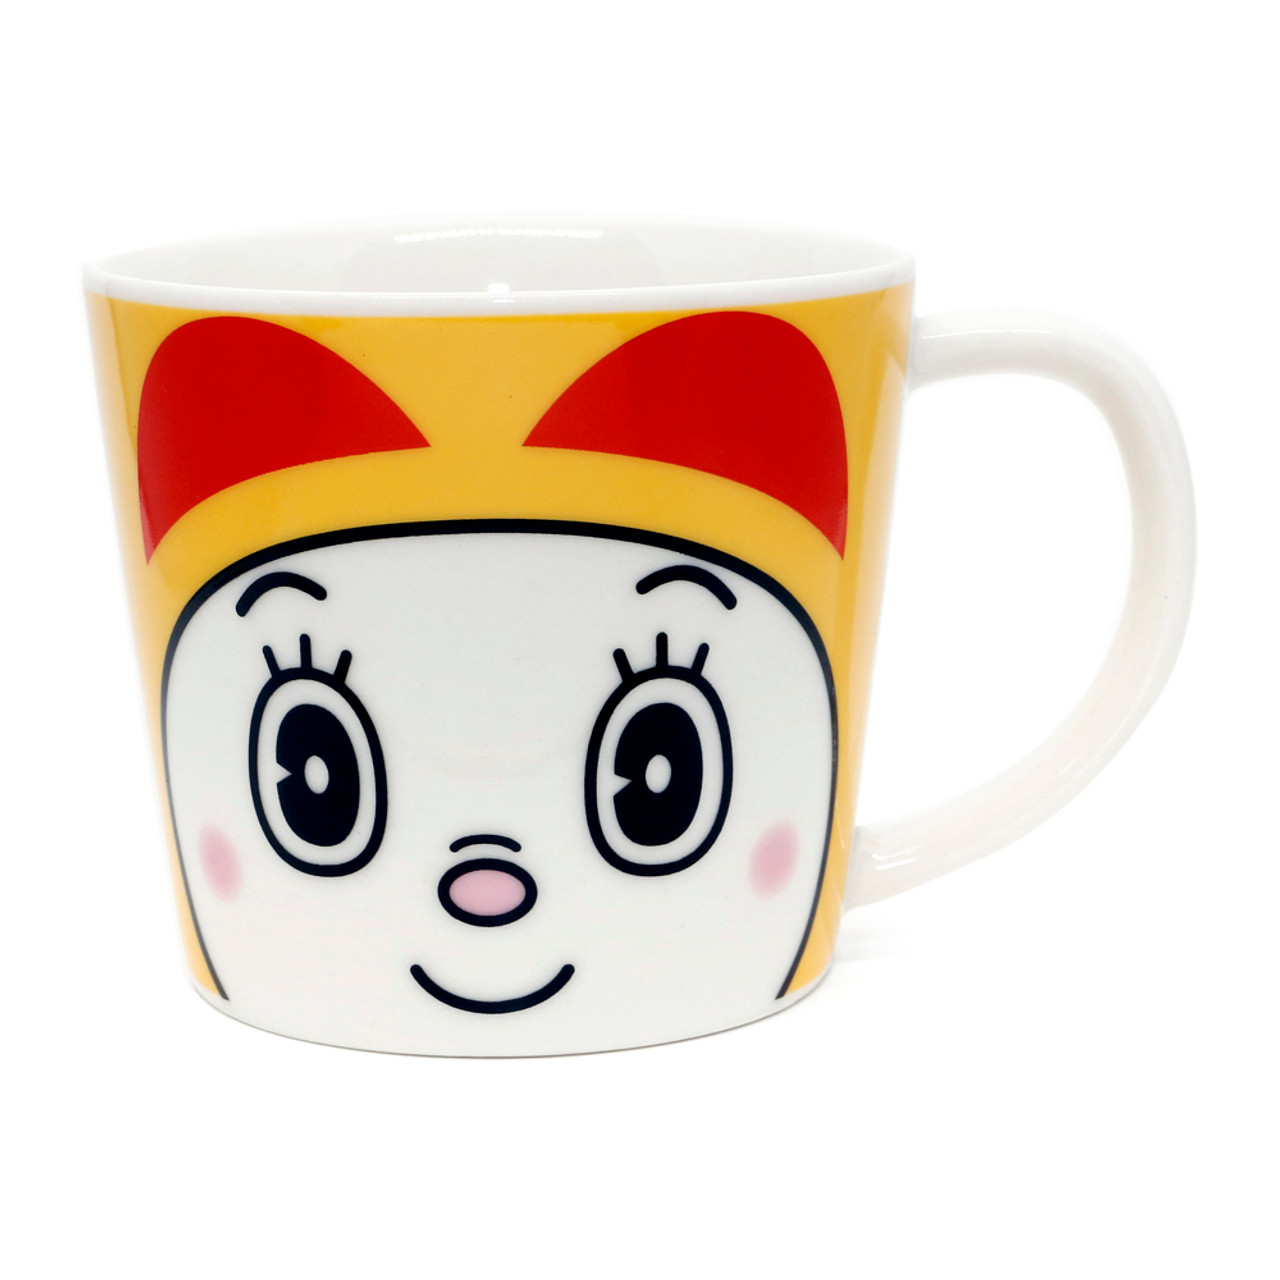 Japan Doraemon Face Porcelain Coffee Mug - Dorami ( Front View )